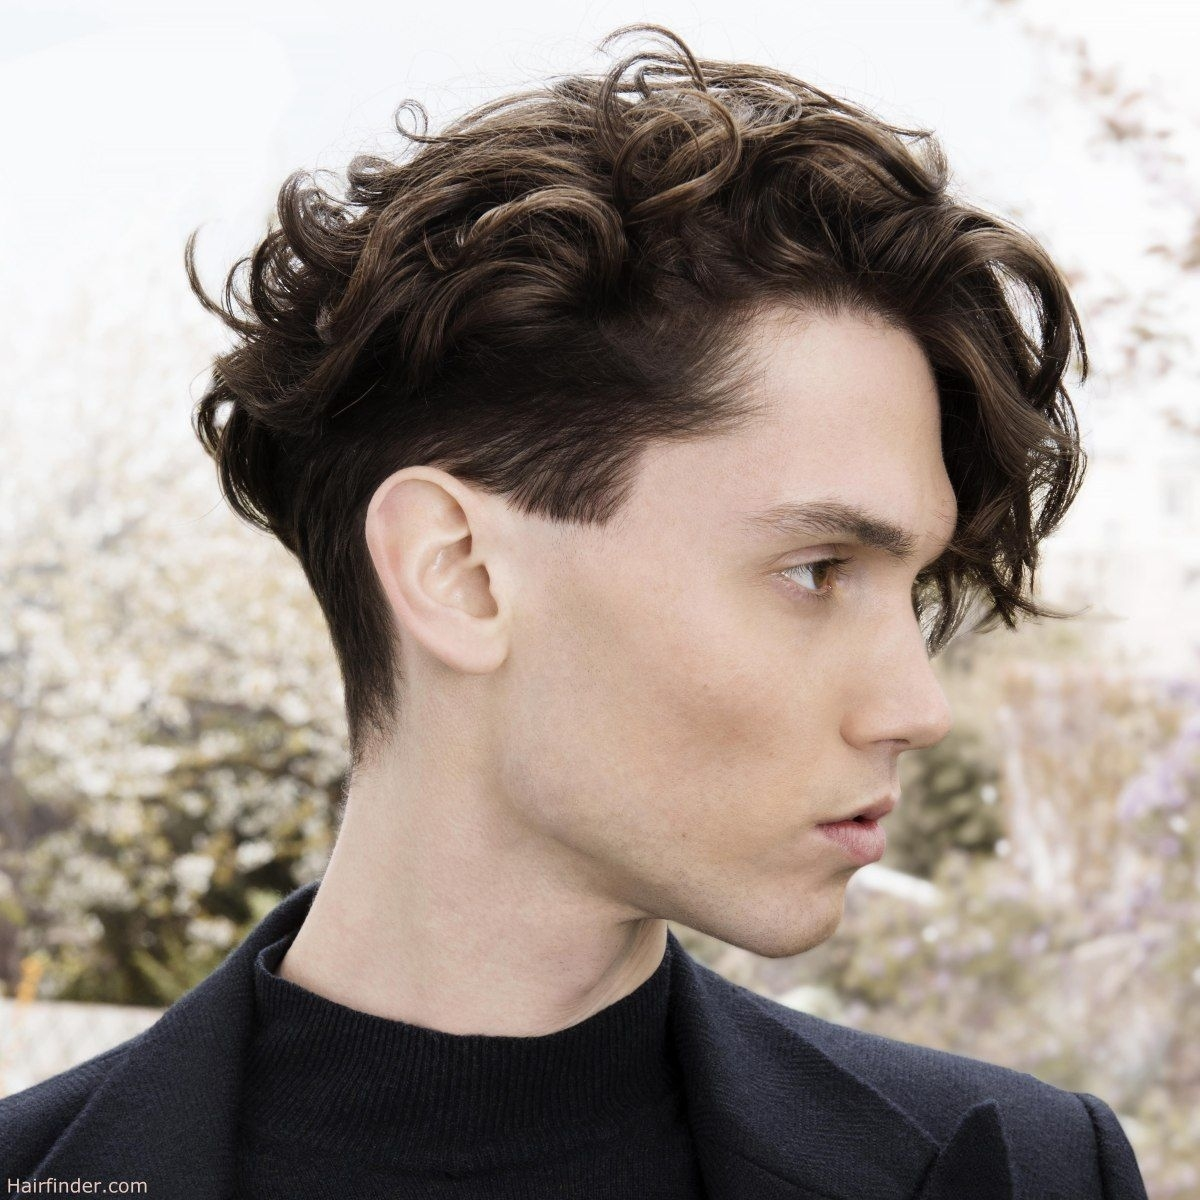 22 Girly Haircuts For Guys | Hairstyles Ideas pertaining to Feminine Haircuts For Guys